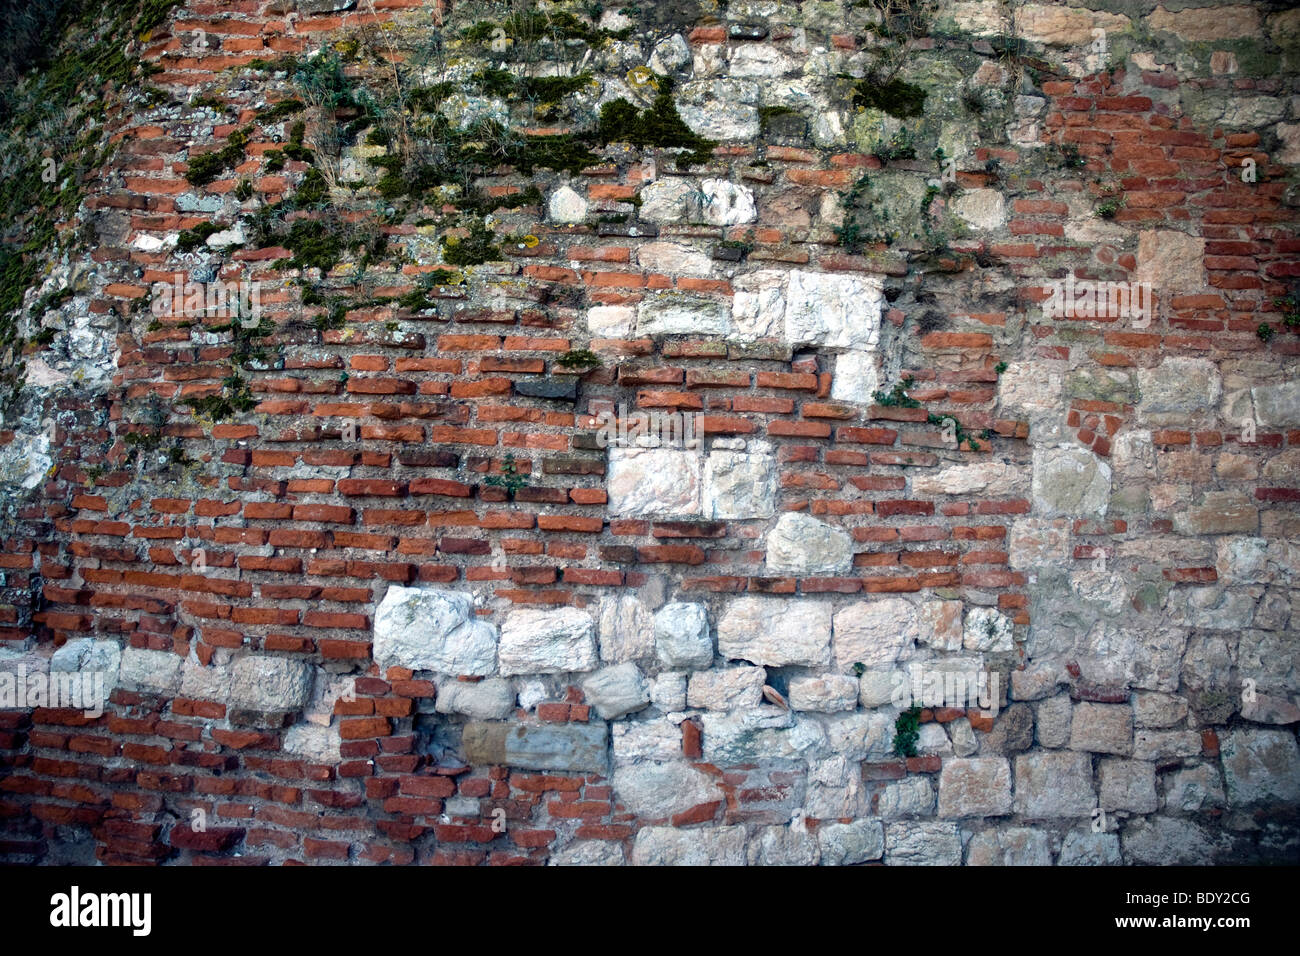 A wall of red bricks and stone is emblematic of Albi's gloriously mixed building materials - Stock Image